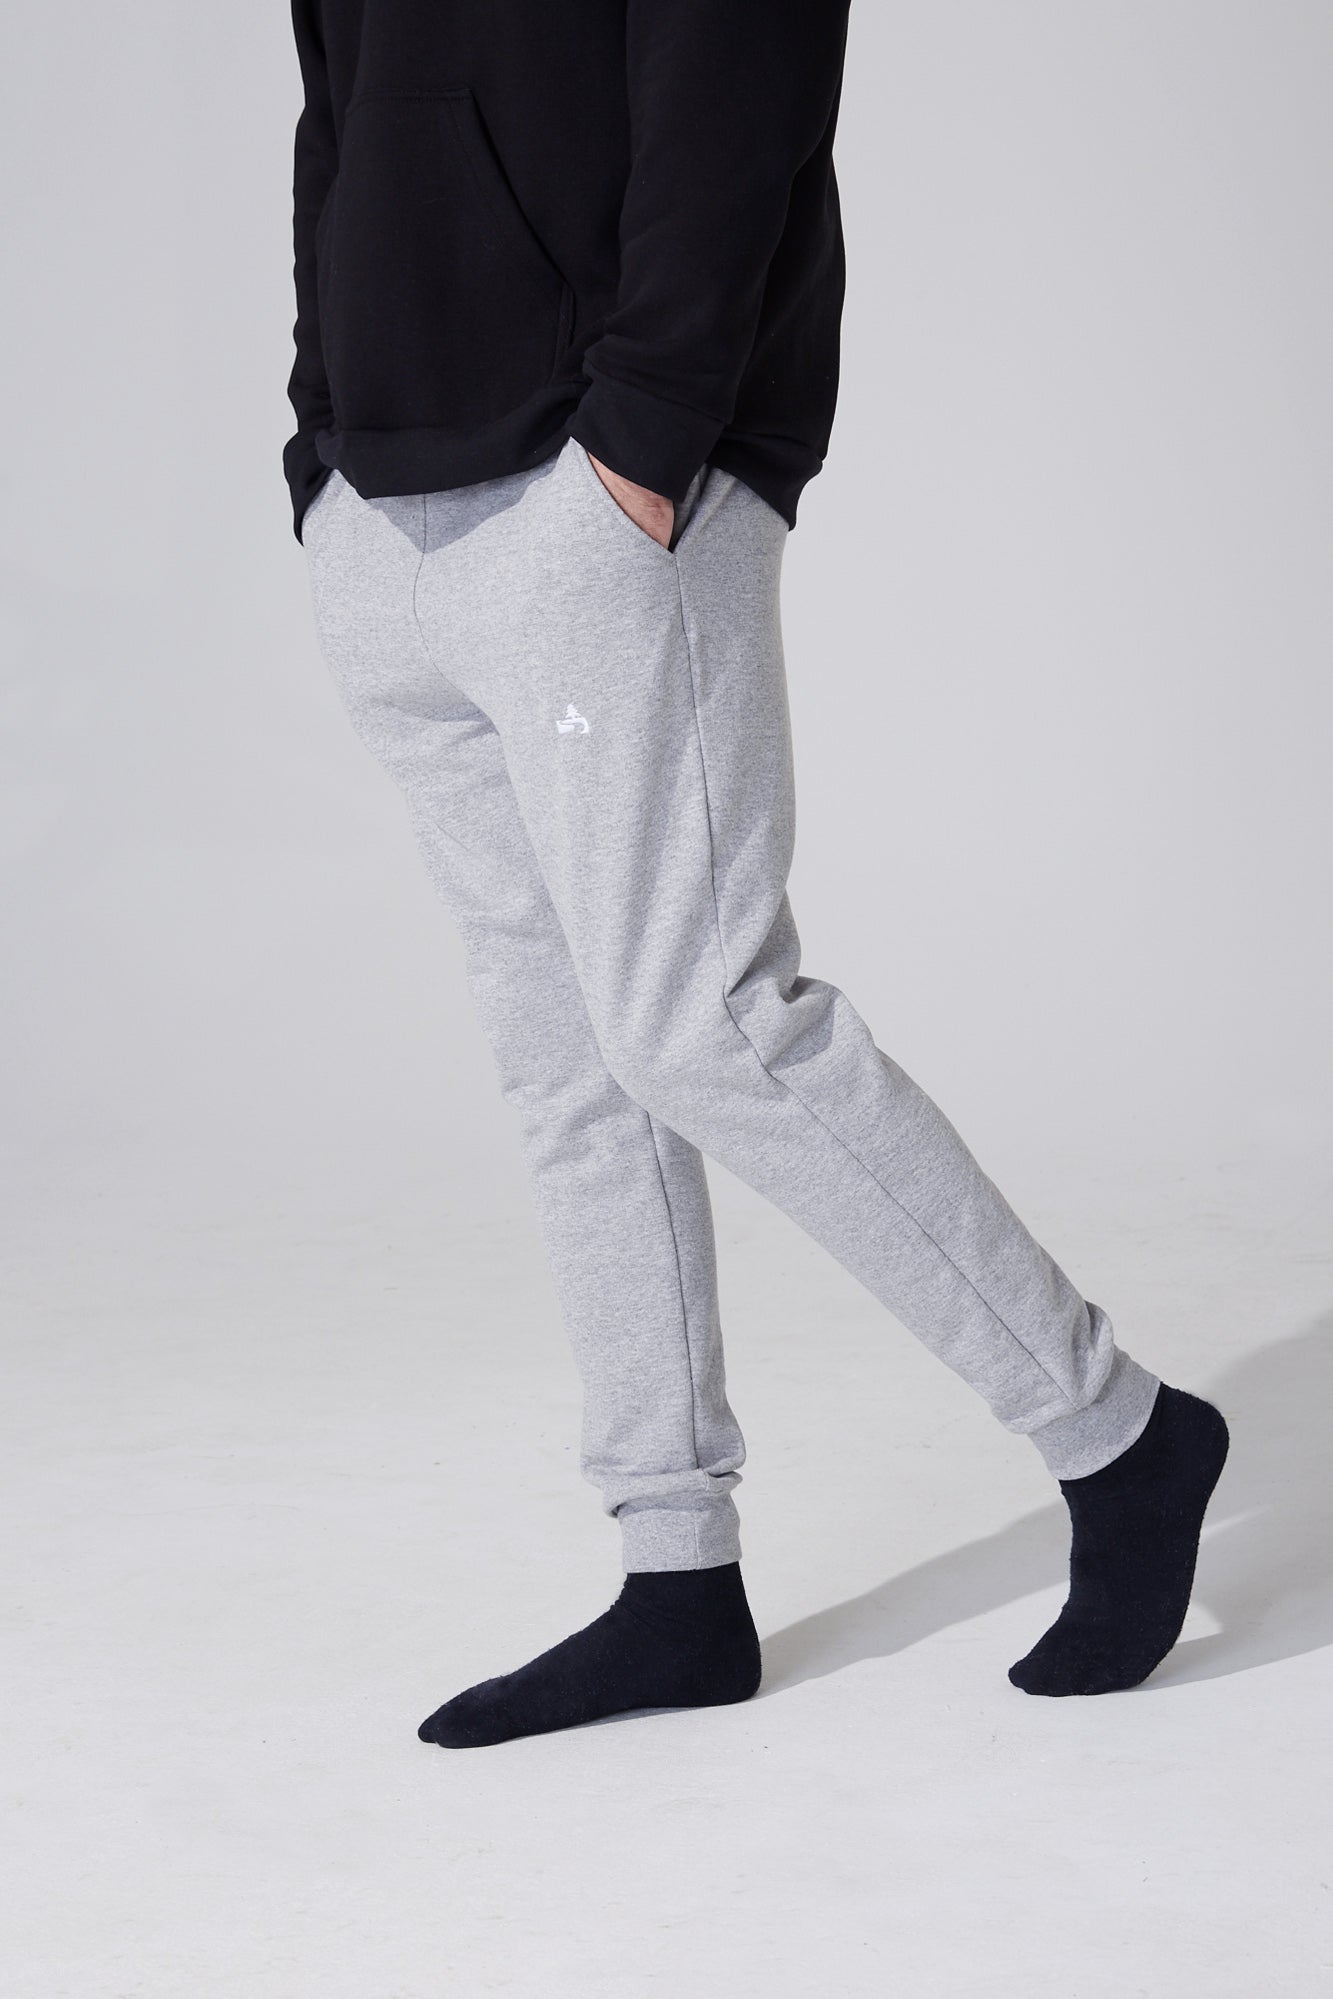 C'est Beau - Road trip Sweatpants - Light Grey